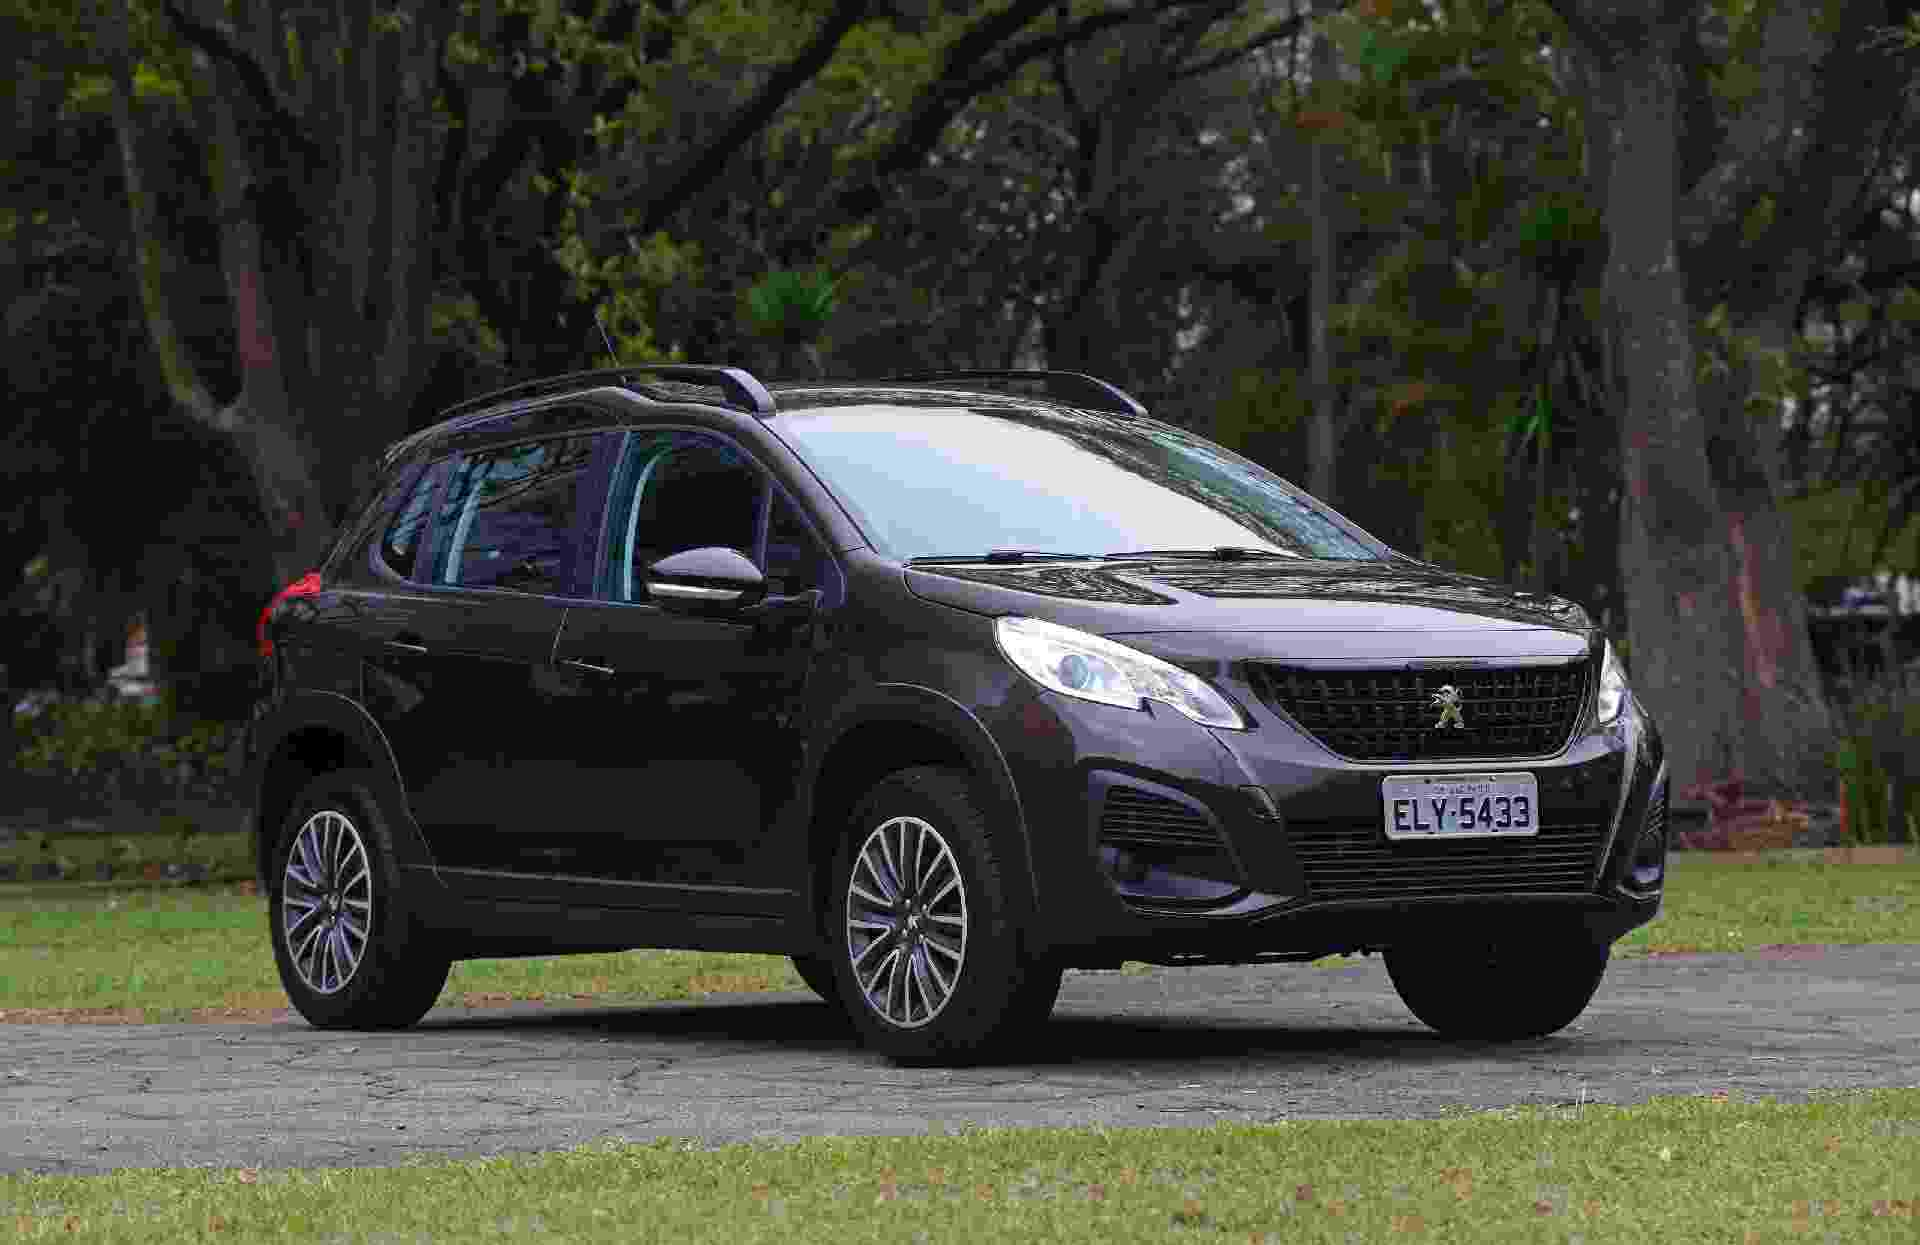 Peugeot 2008 PCD - Murilo Goes/UOL